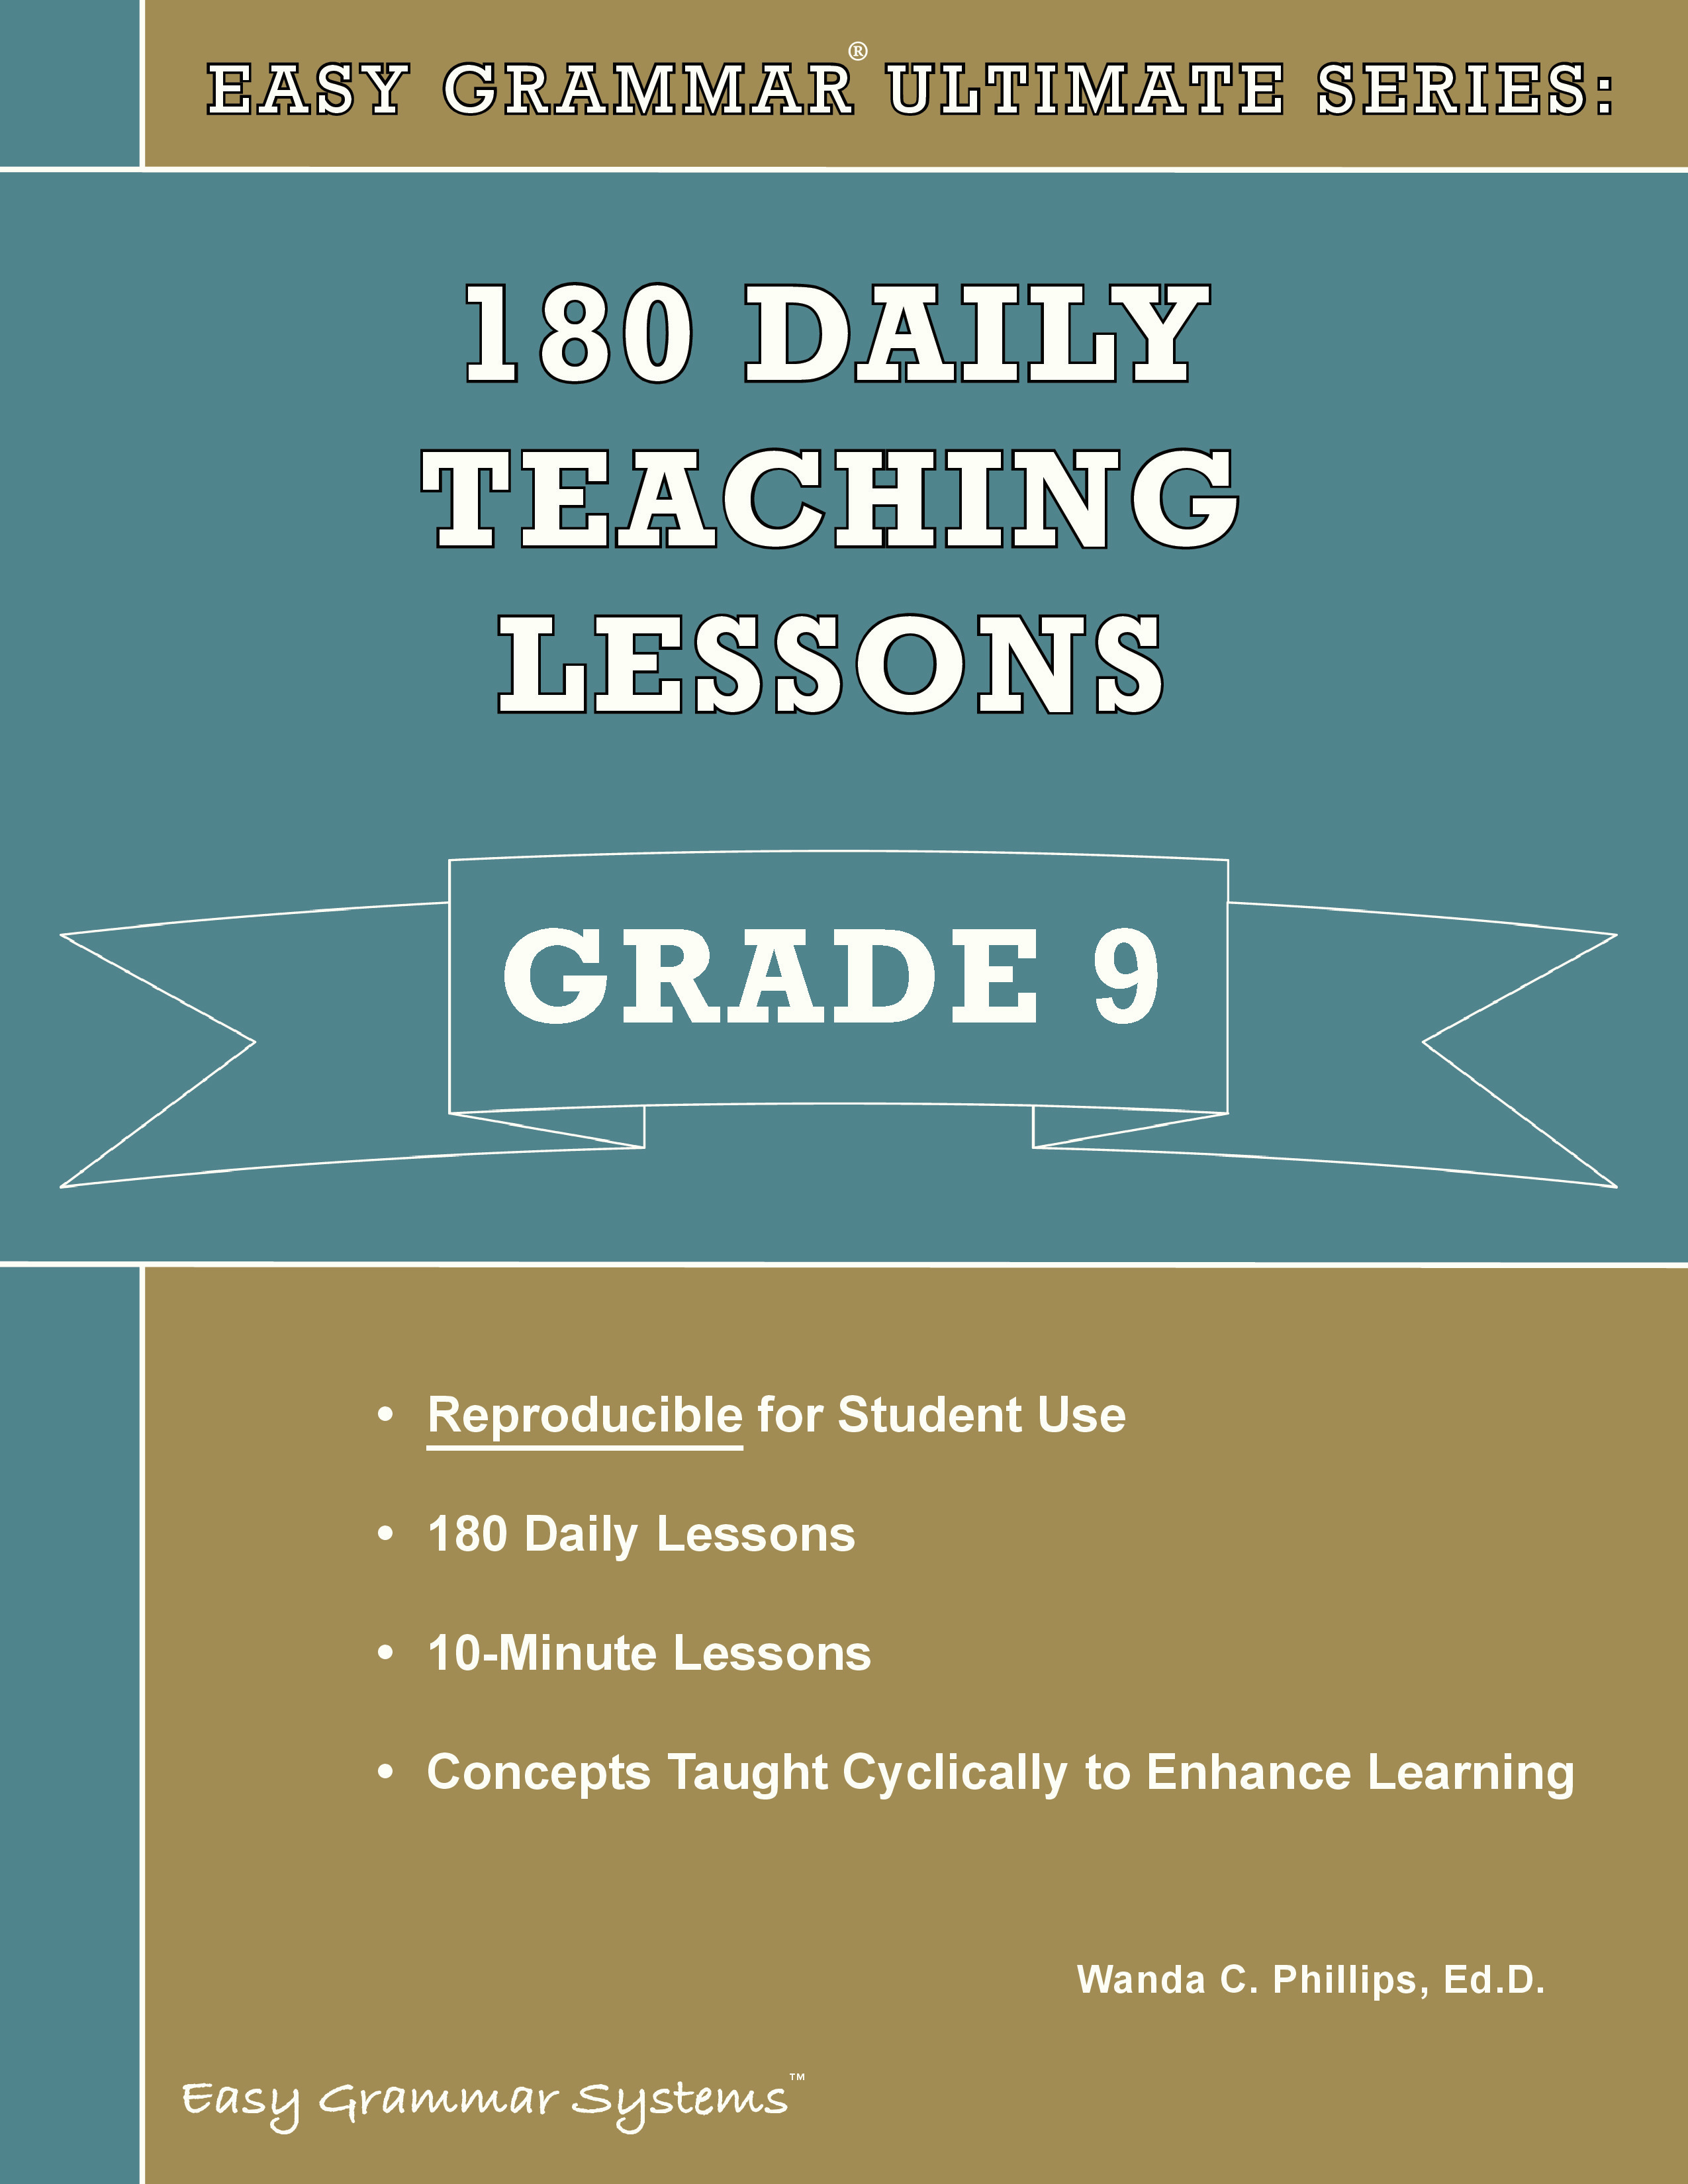 Easy Grammar Ultimate Series: 180 Daily Teaching Lessons Grade 9 Tests